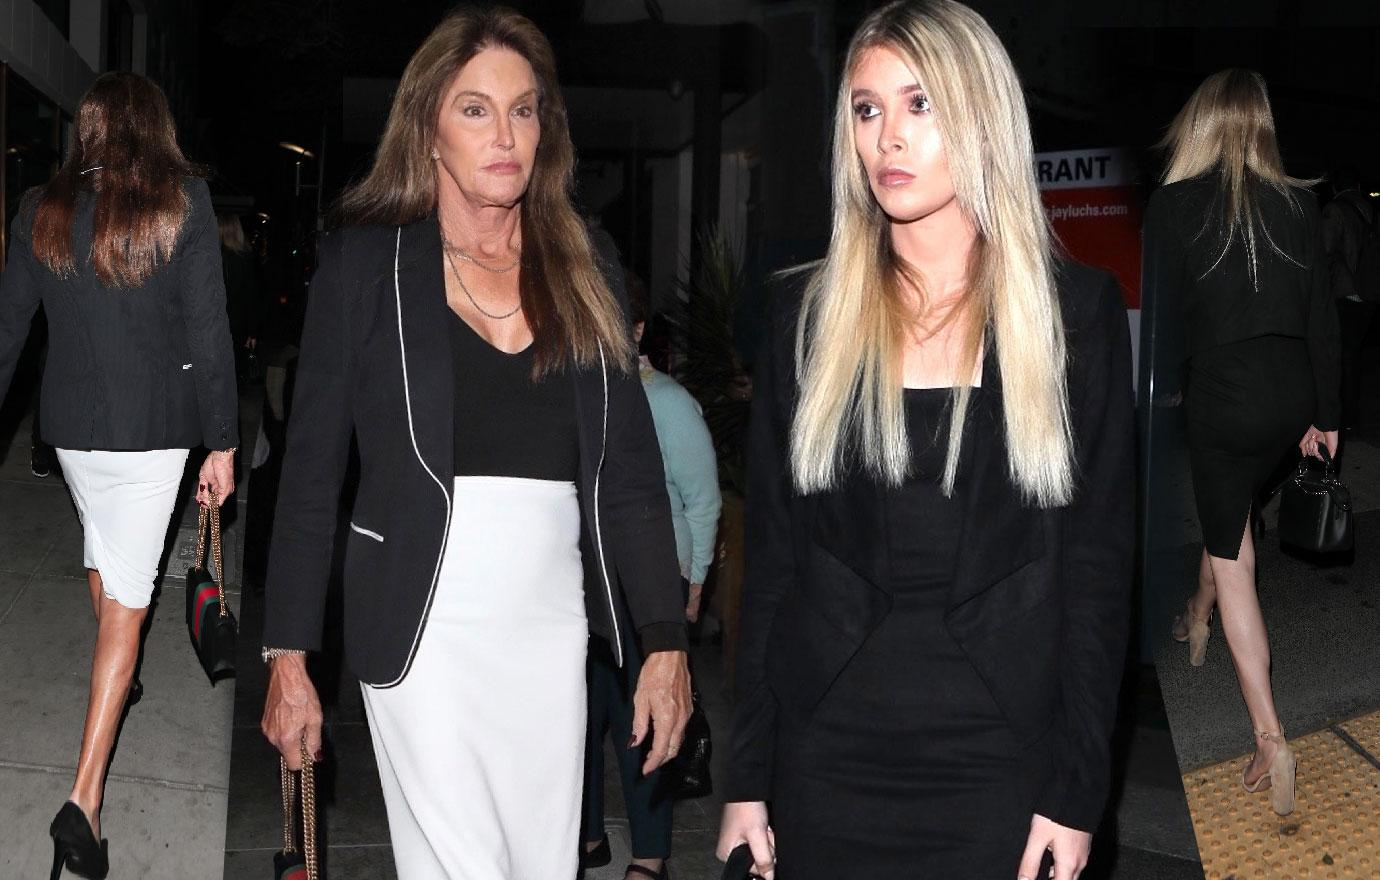 Caitlyn Jenner wears skirt night out with girlfriend Sophia Hutchins